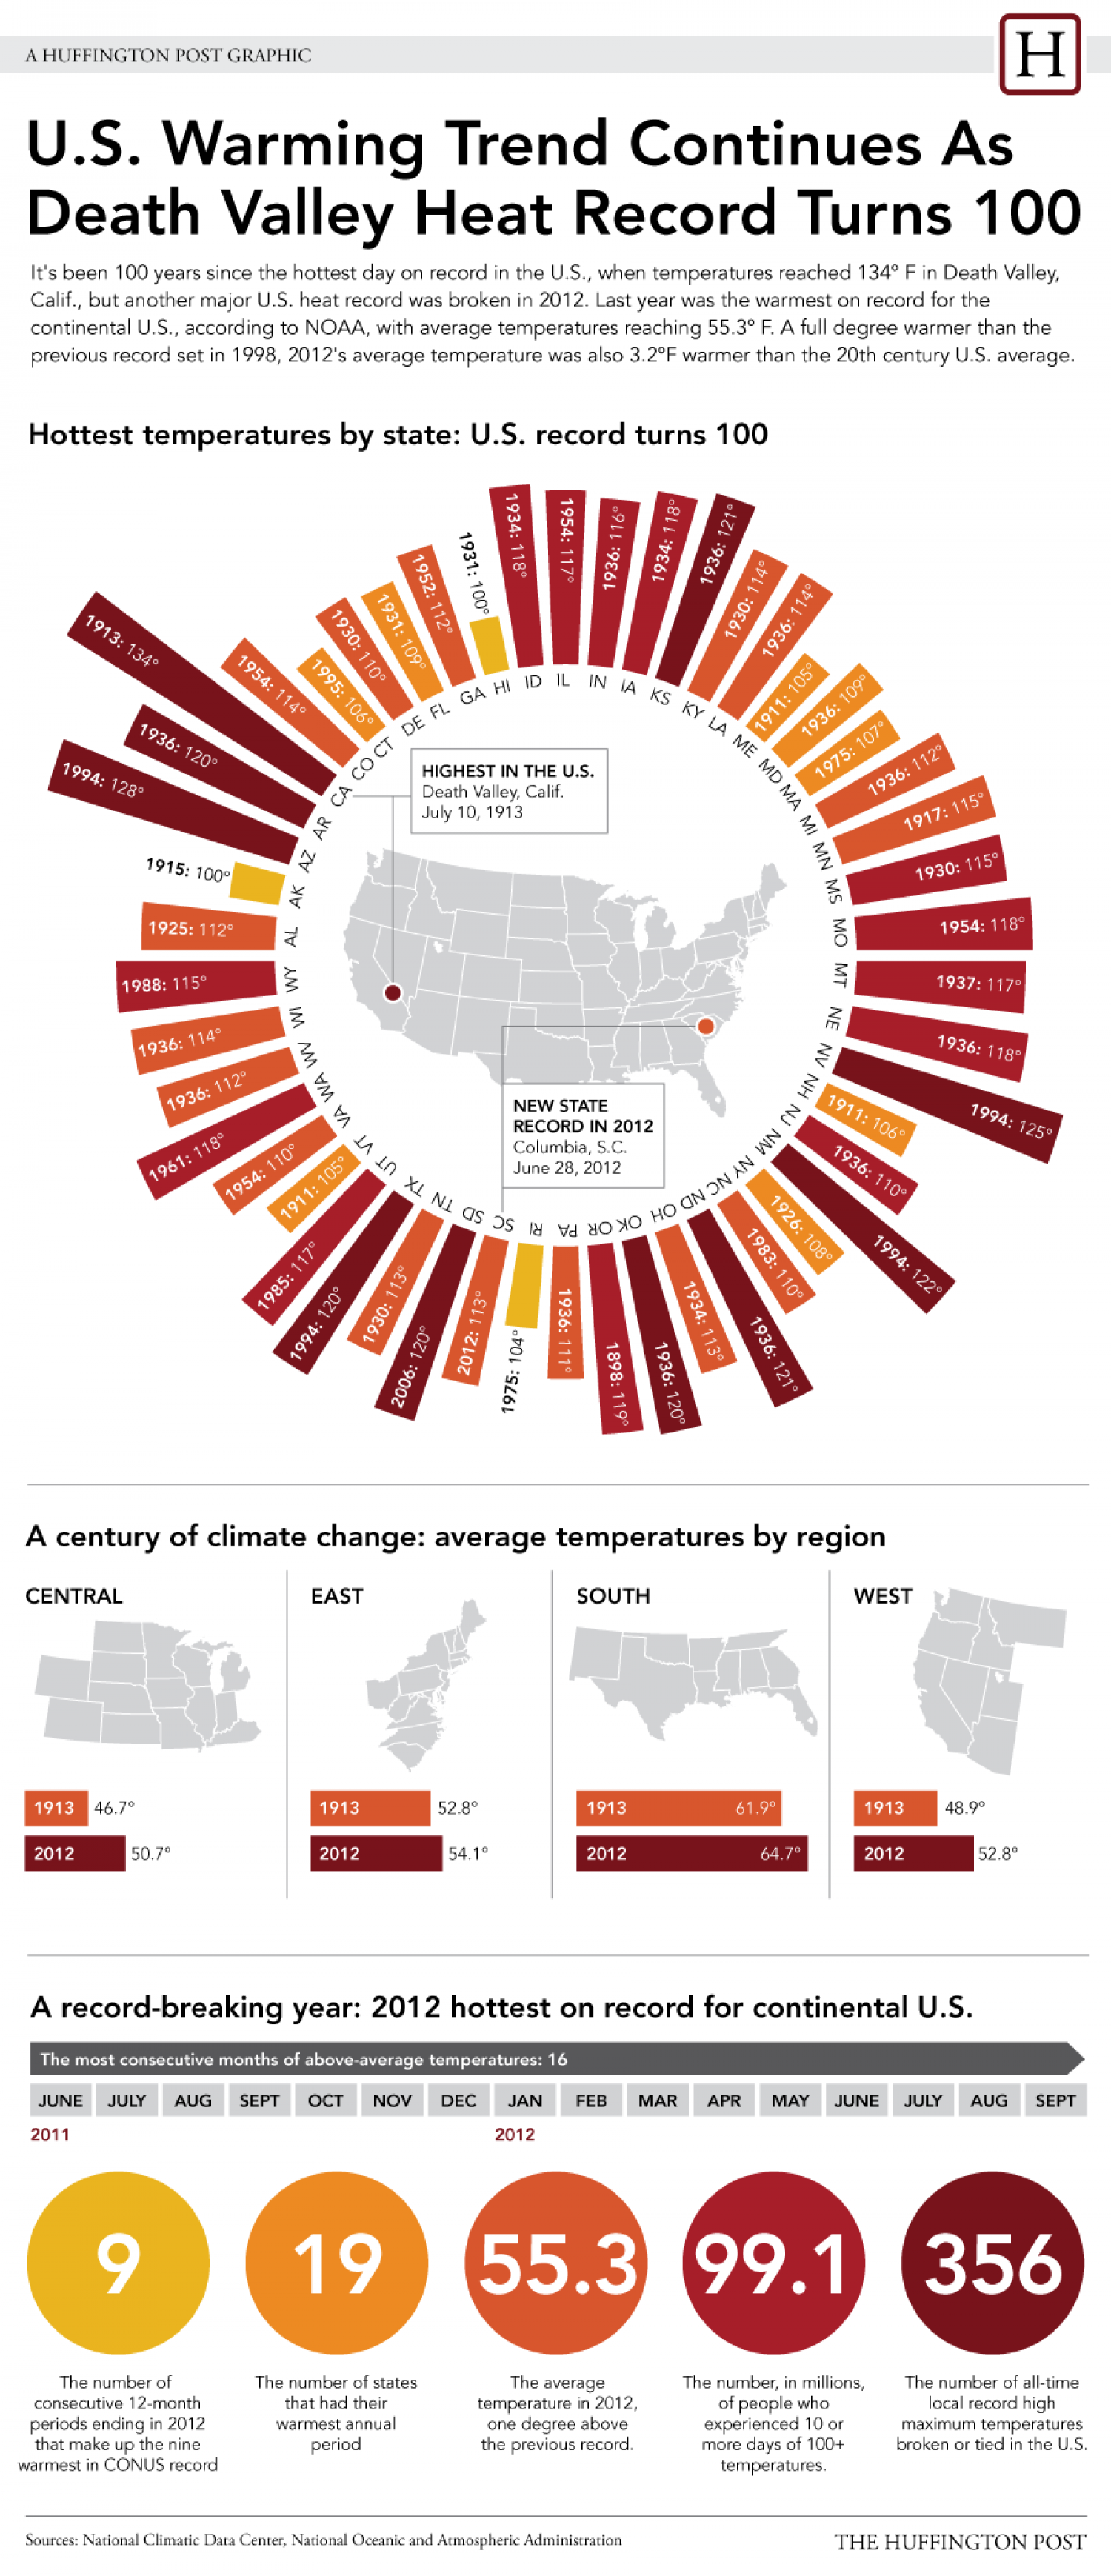 U.S. Warming Trend Continues Infographic